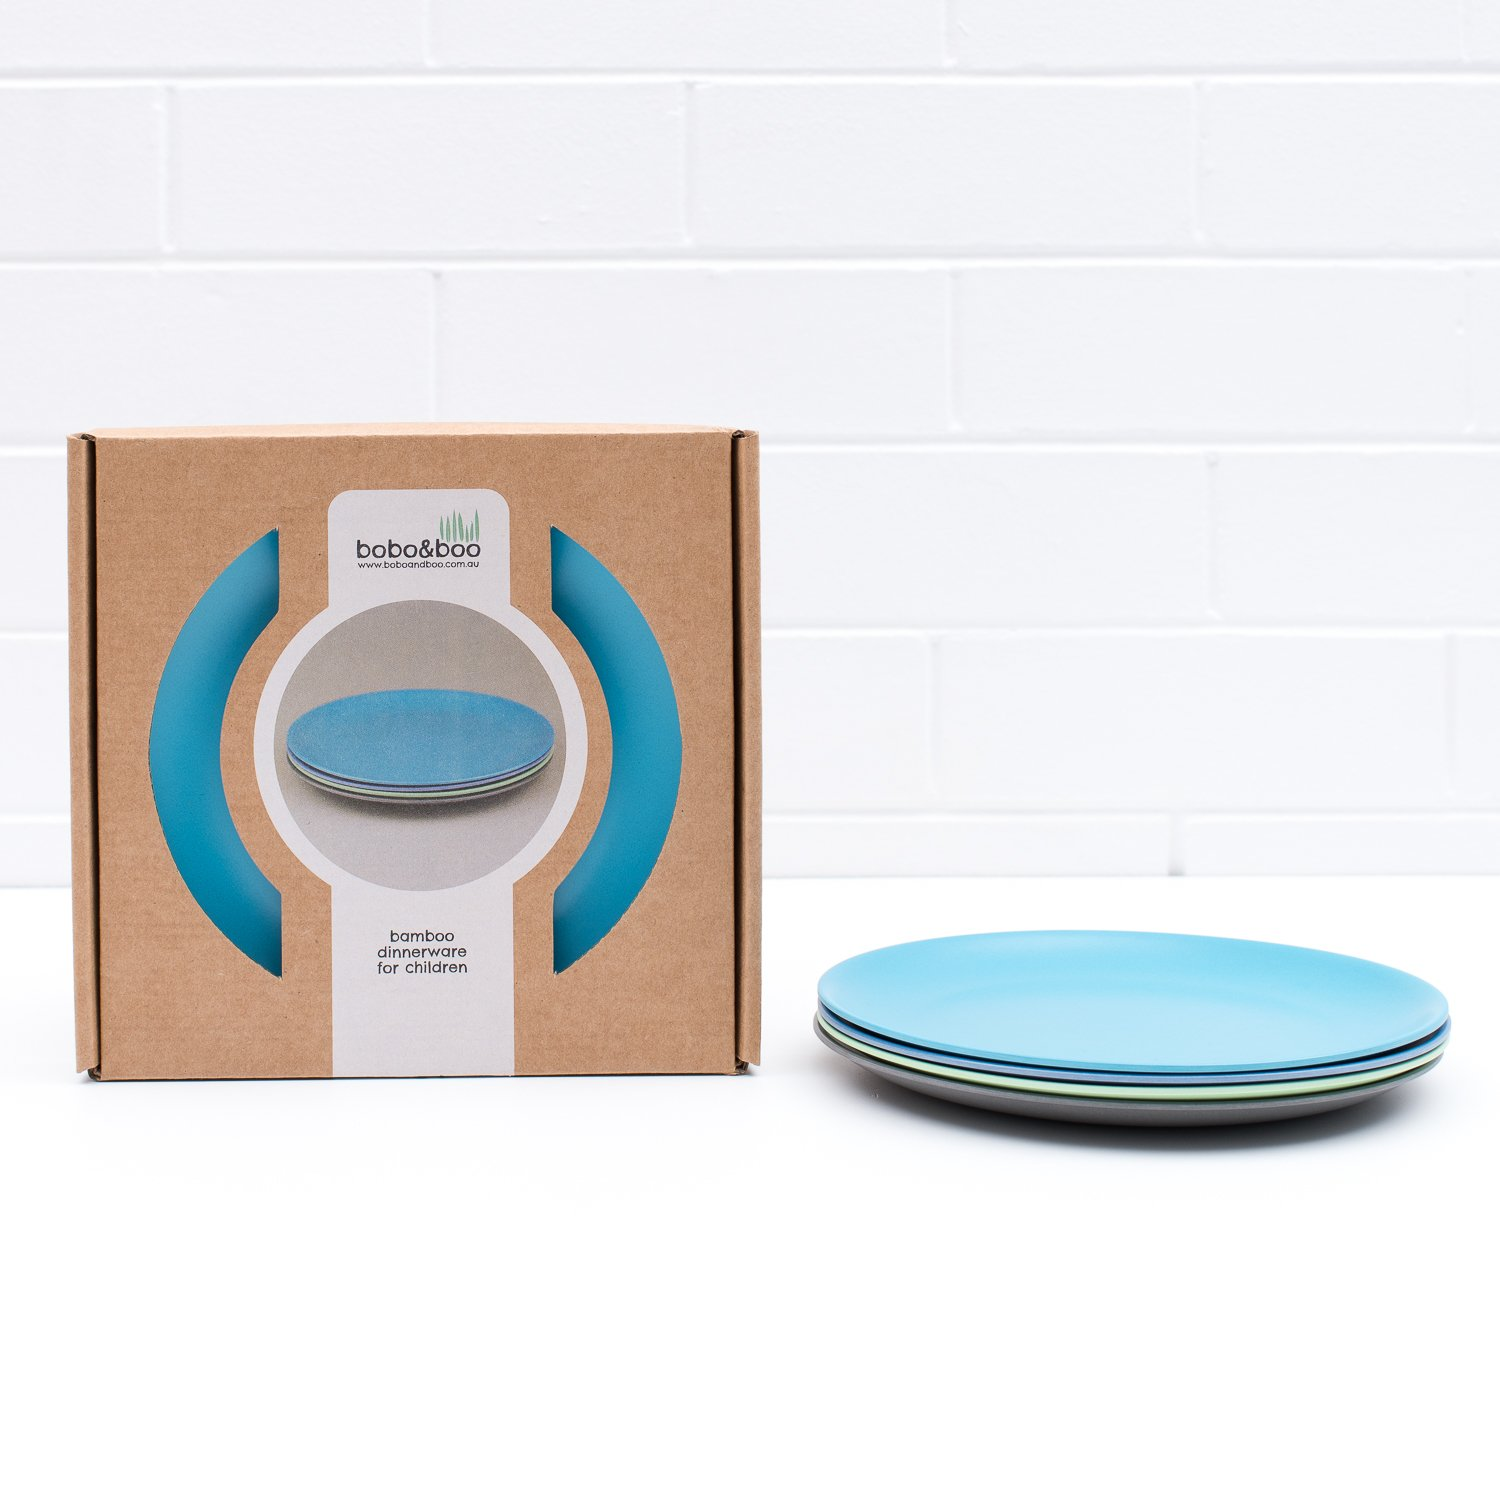 Bobo&Boo Bamboo Kids Plates, Set of 4 Eco Friendly Toddler Plates :: Non Toxic Children's Dinnerware for Babies & Big Kids :: Mix and Match :: Great Gift for Baby Showers & Birthdays, Coastal